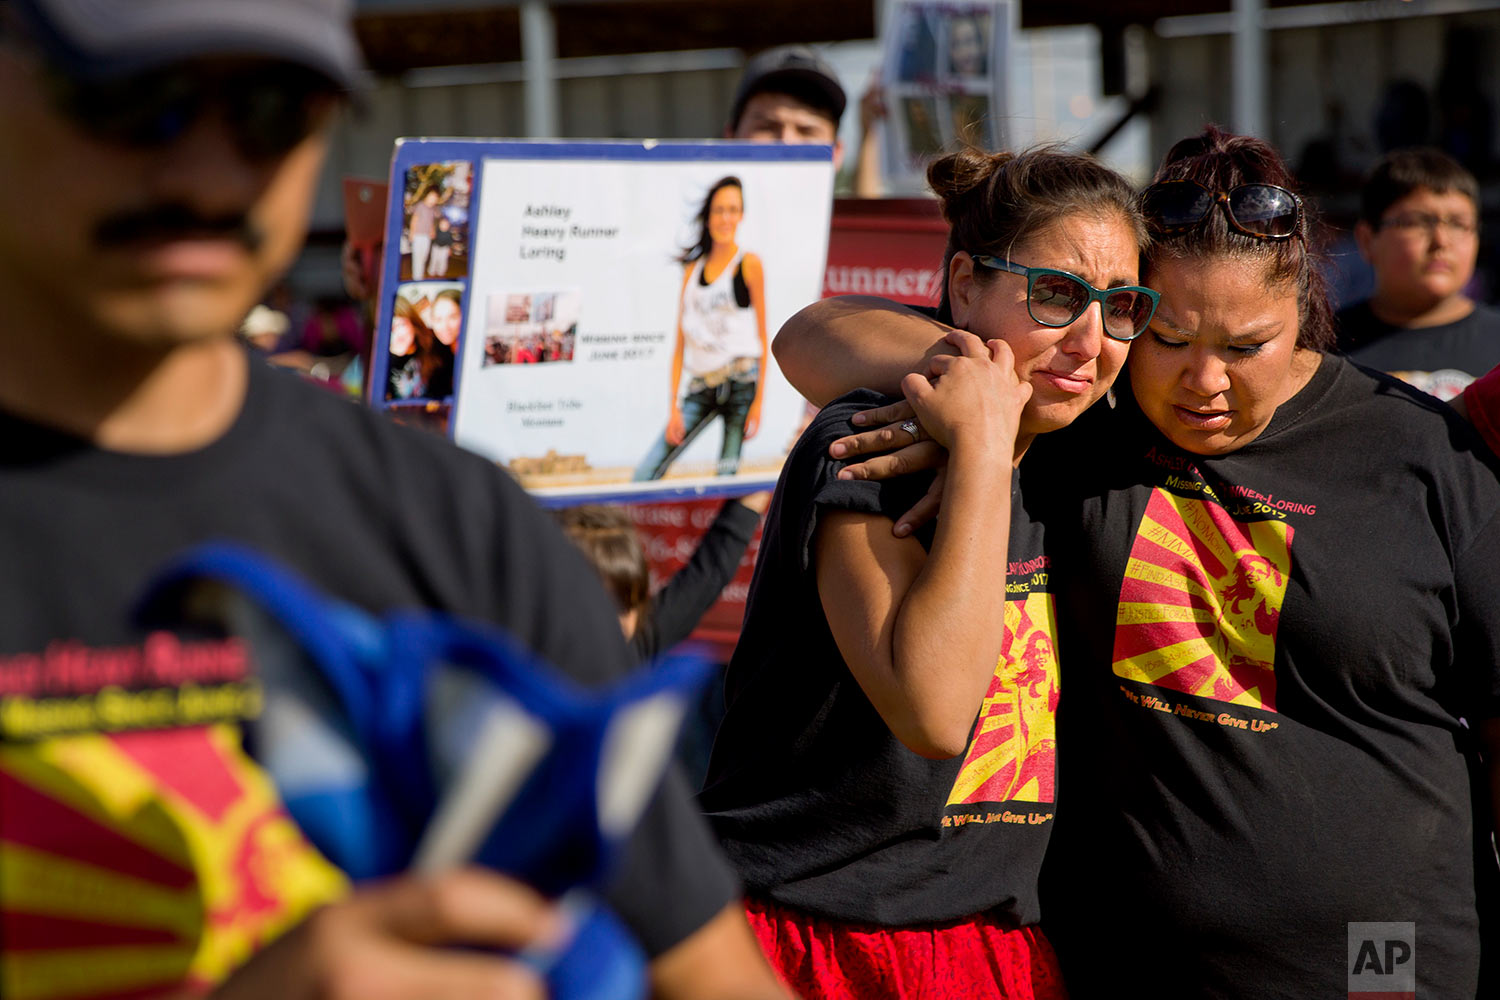 Jenna Loring, left, the aunt of Ashley HeavyRunner Loring, cries with her cousin, Lissa Loring, during a traditional blanket dance before the crowd at the North American Indian Days celebration on the Blackfeet Indian Reservation in Browning, Mont., July 14, 2018. (AP Photo/David Goldman)